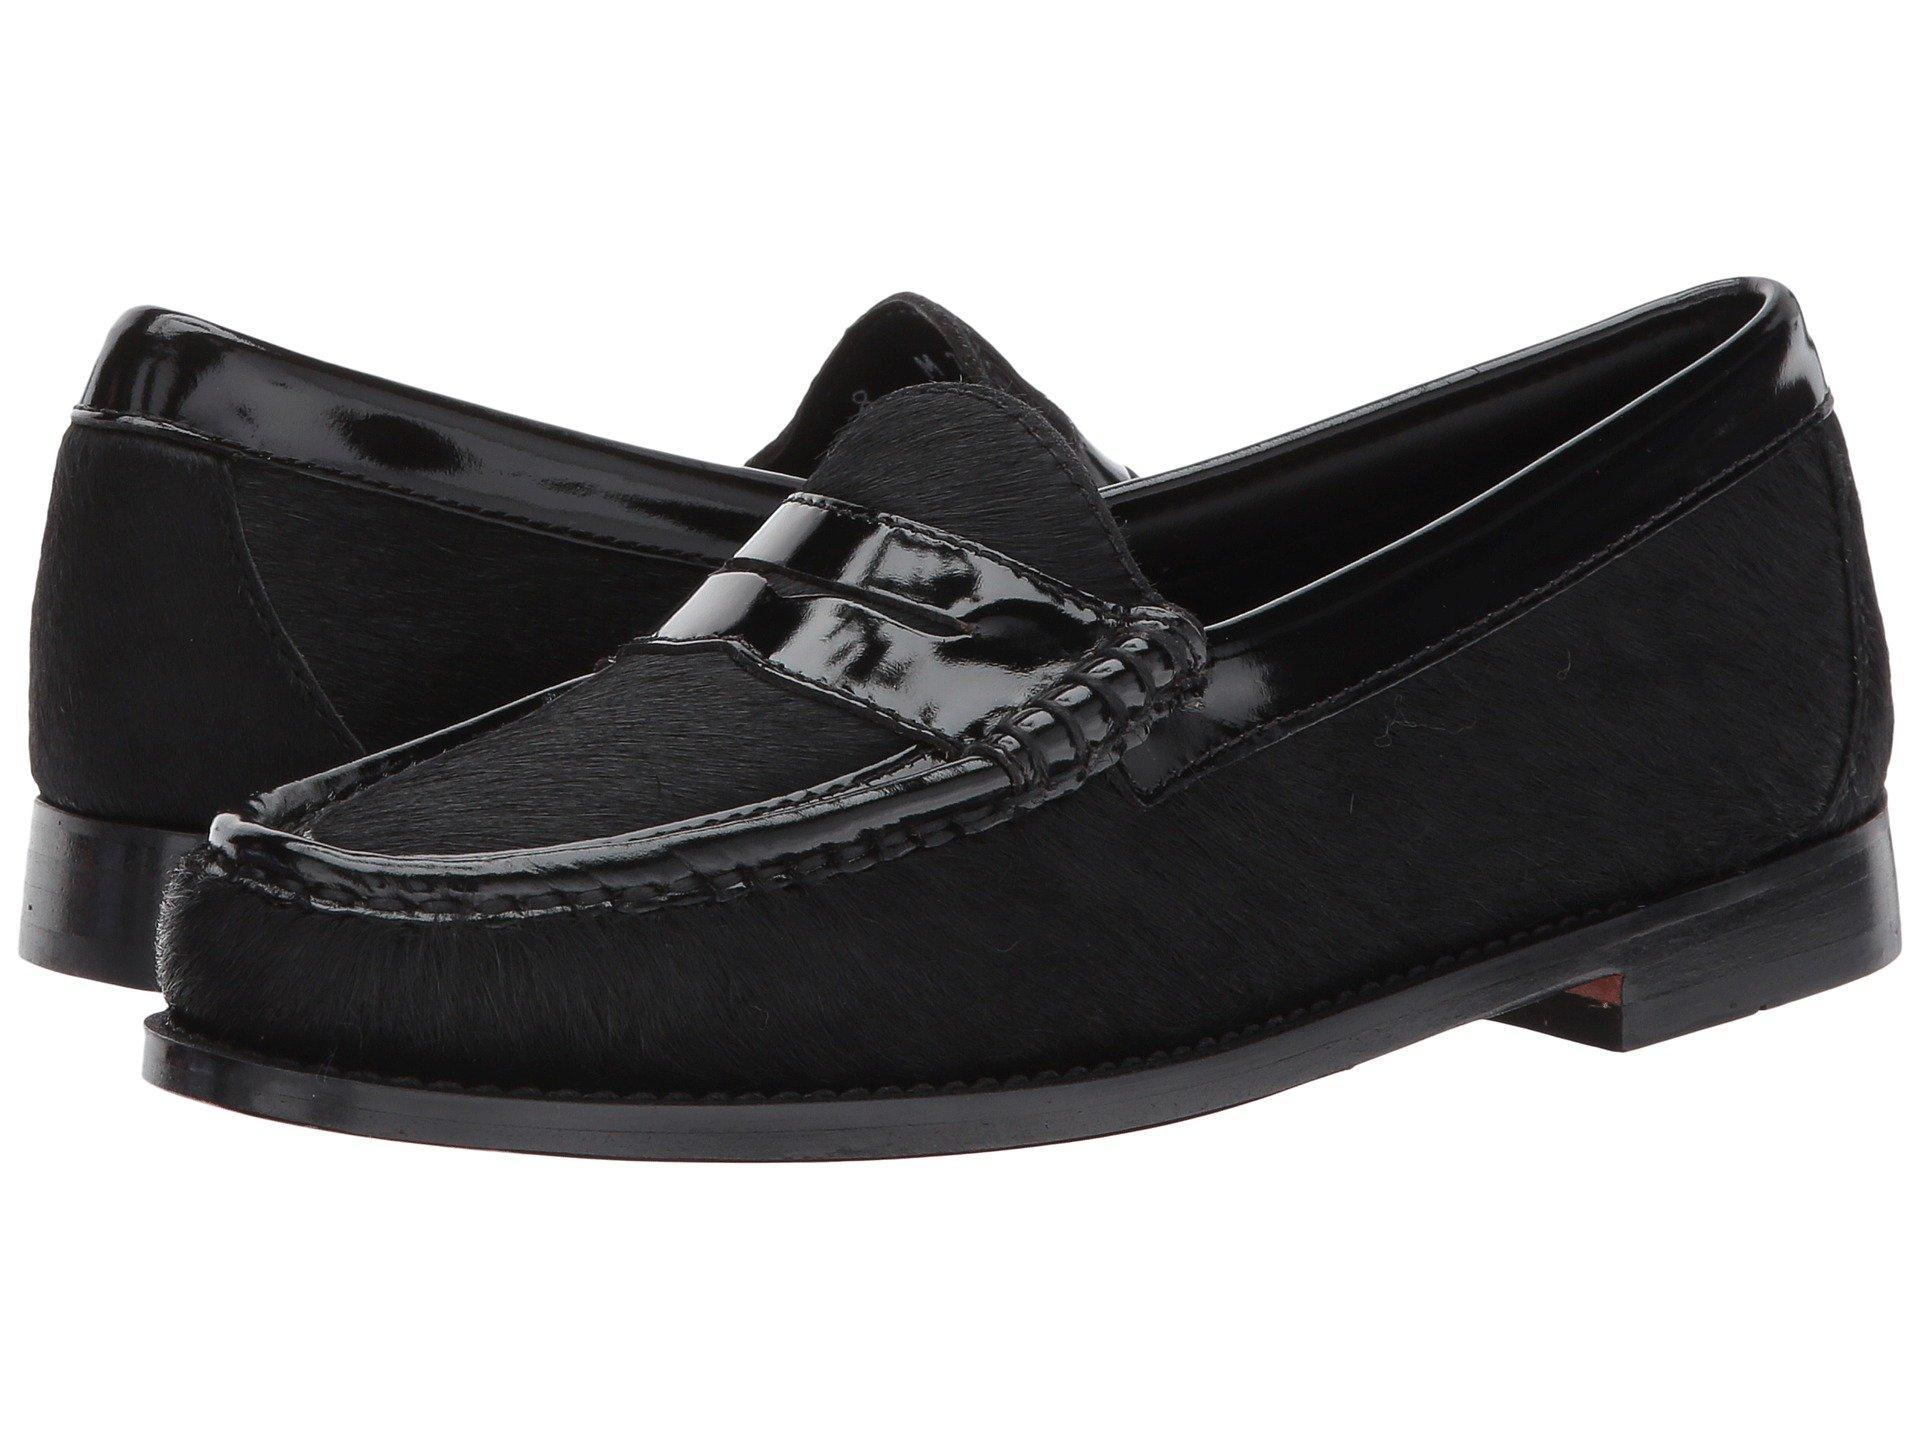 f75256b6f701 G.H. Bass   Co. Whitney Weejuns In Black Black Calf Hair Patent ...